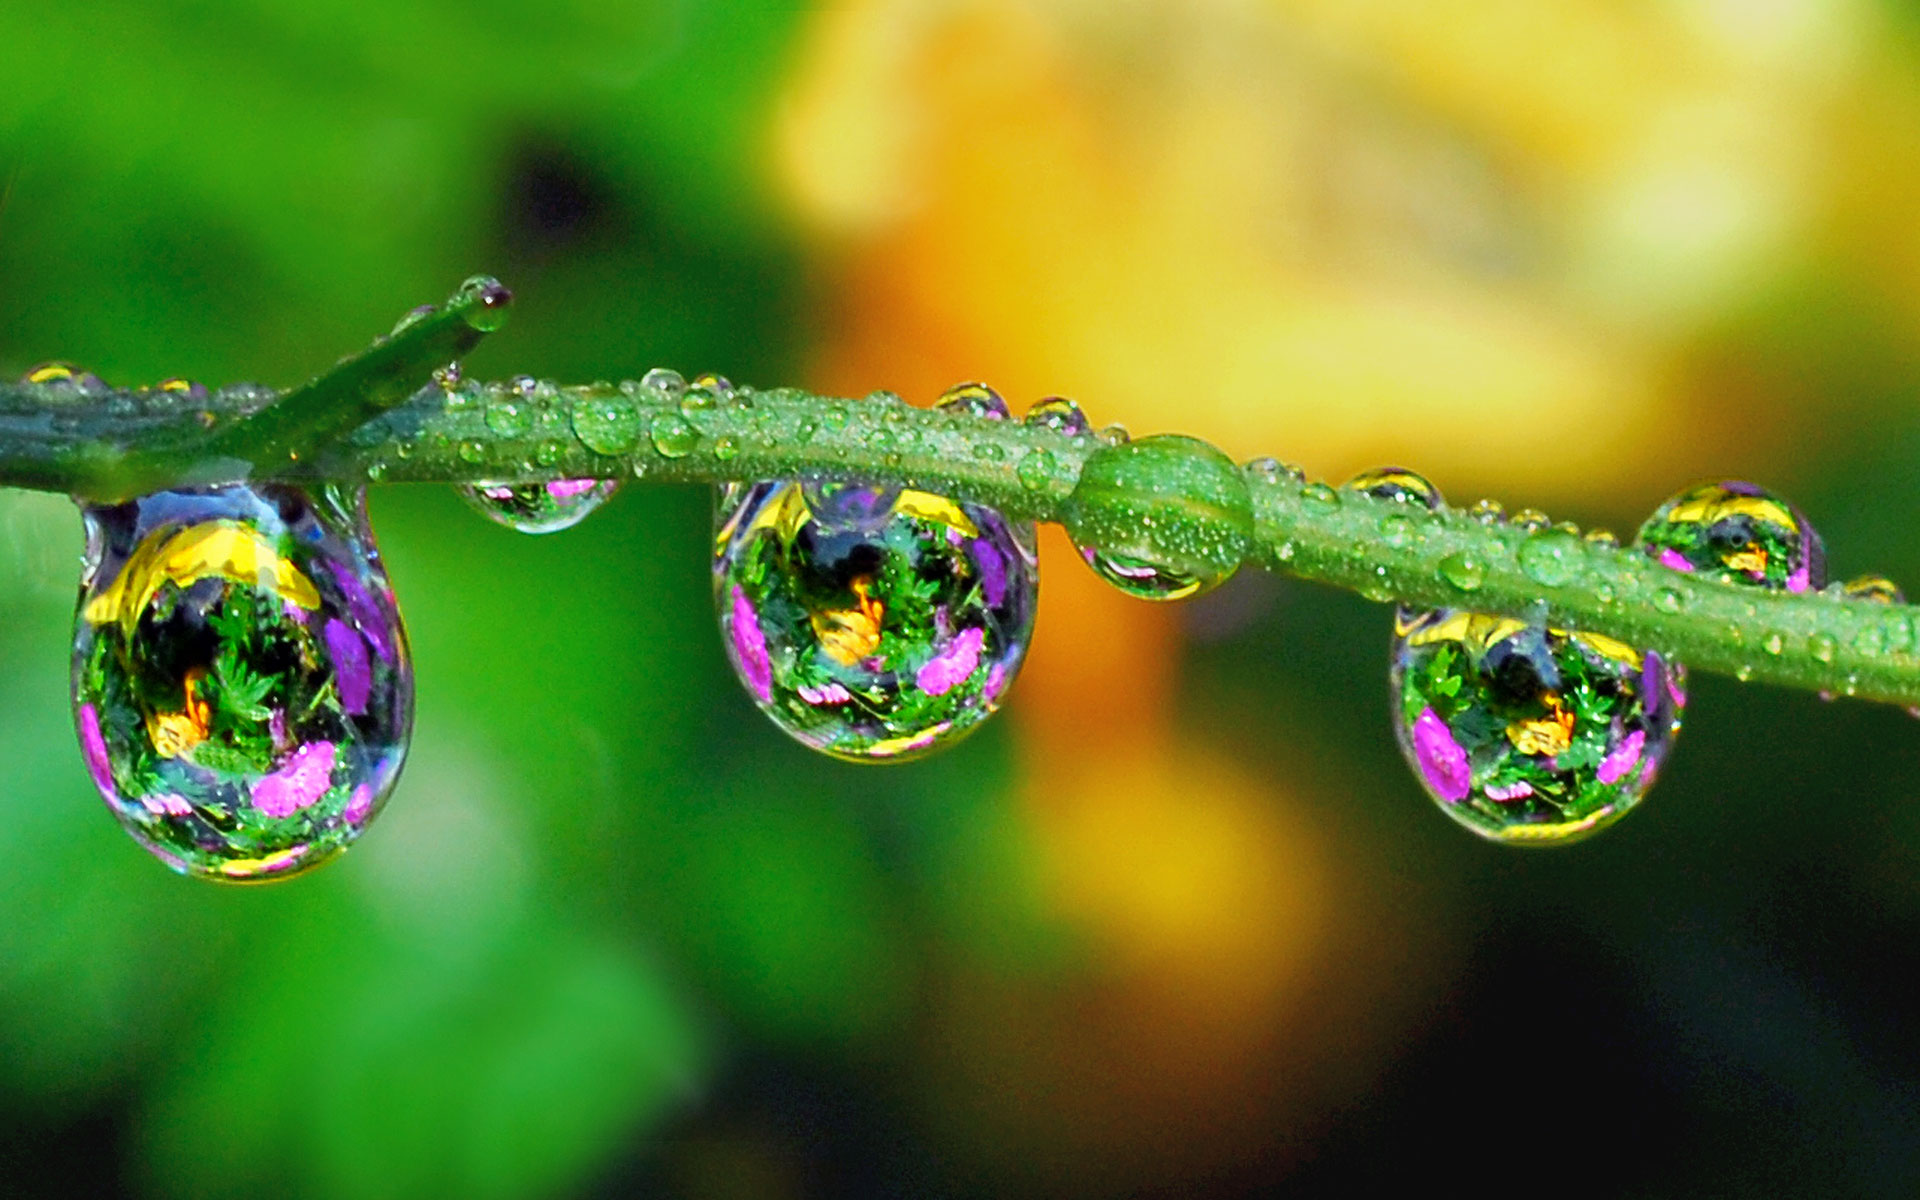 Abstract Water Drops Free 340555 Wallpaper wallpaper